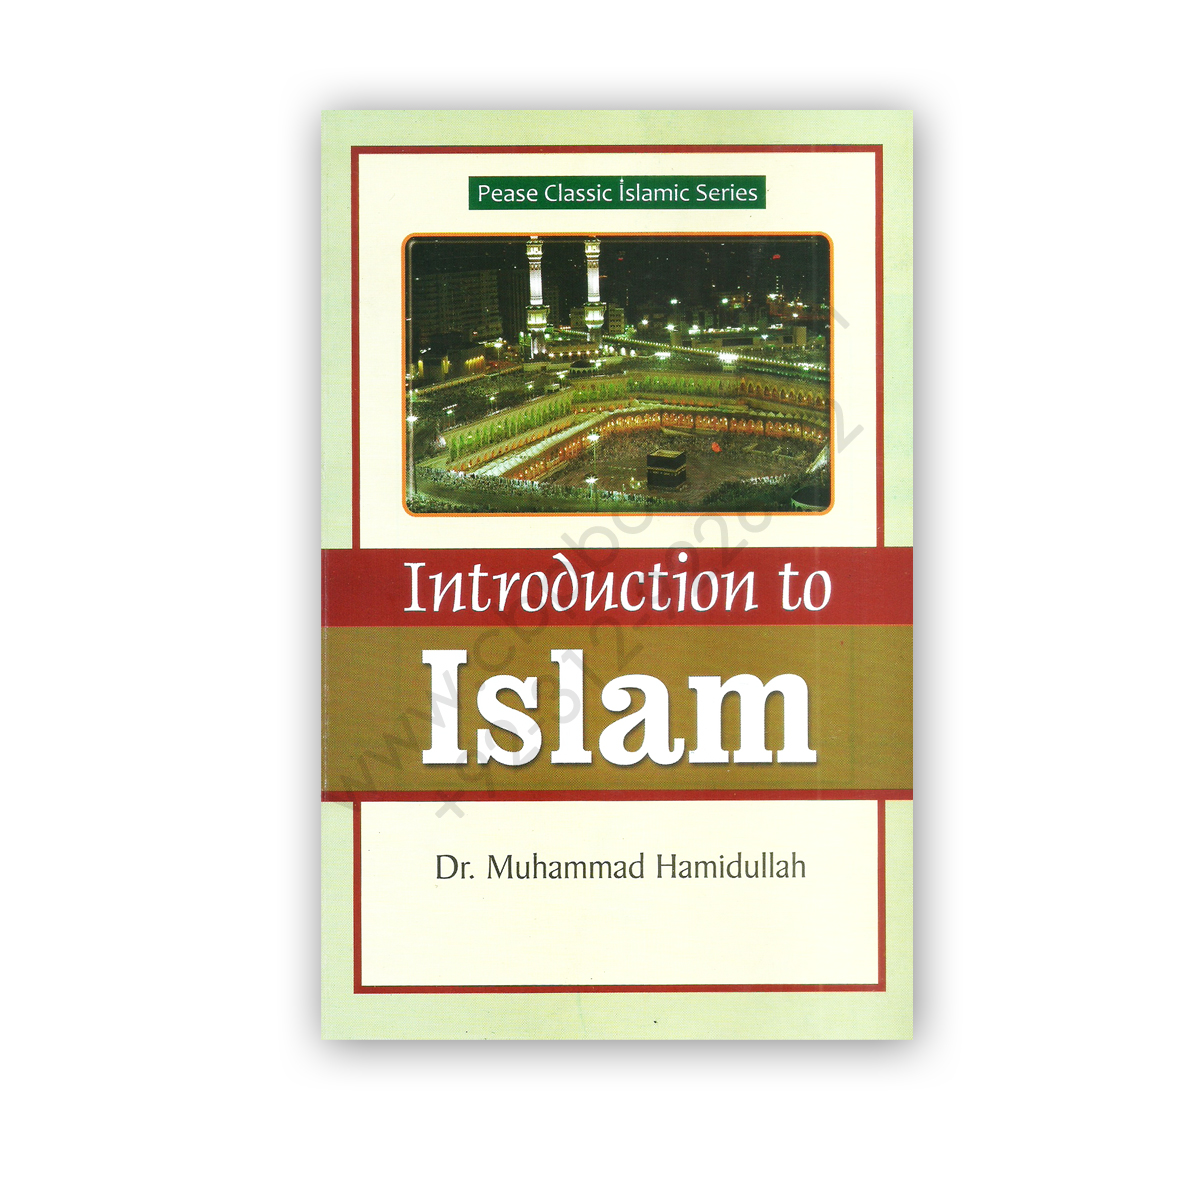 introduction to islam by dr muhmmad hamidullah